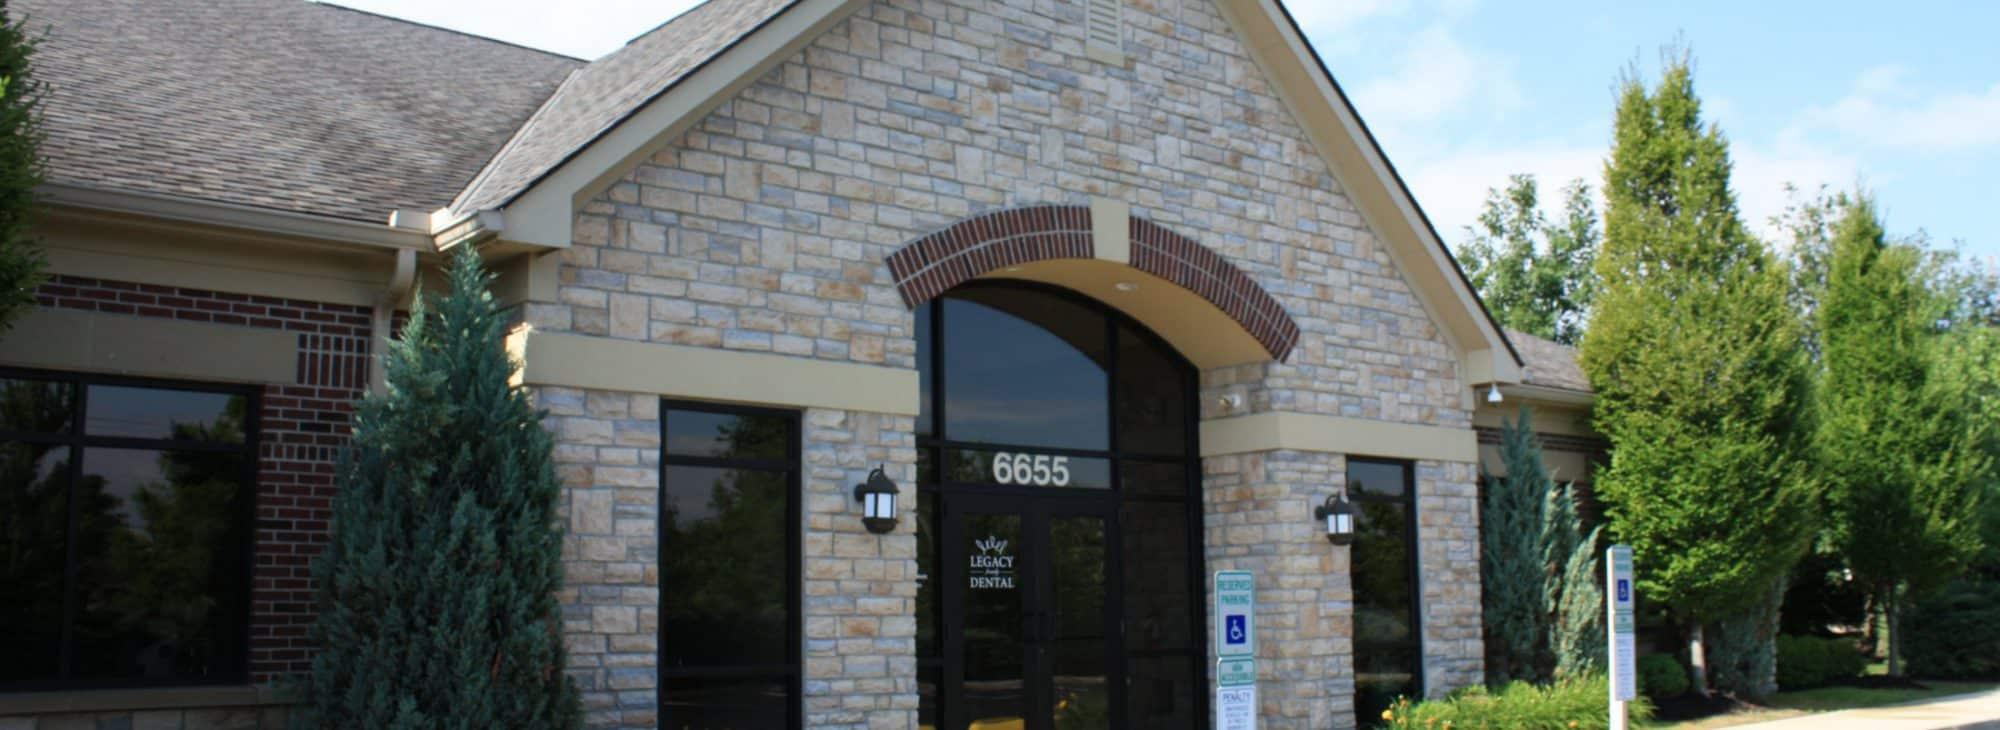 Legacy Family Dental, Post Road, Dublin, Ohio